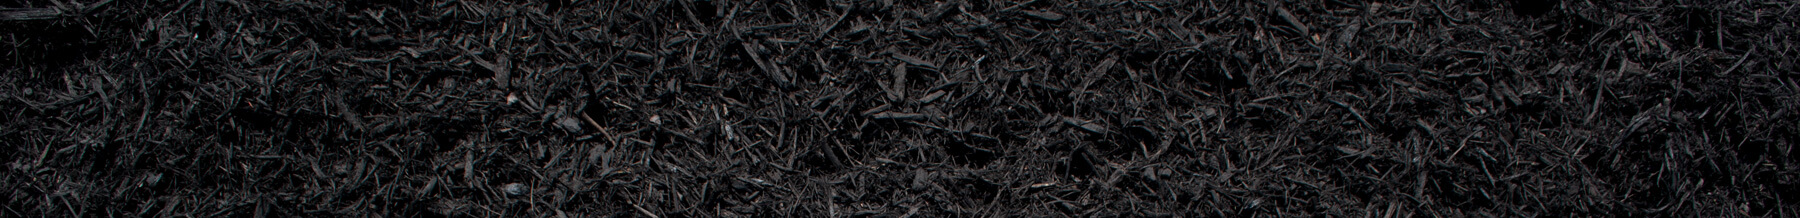 close up wide shot of black dyed mulch